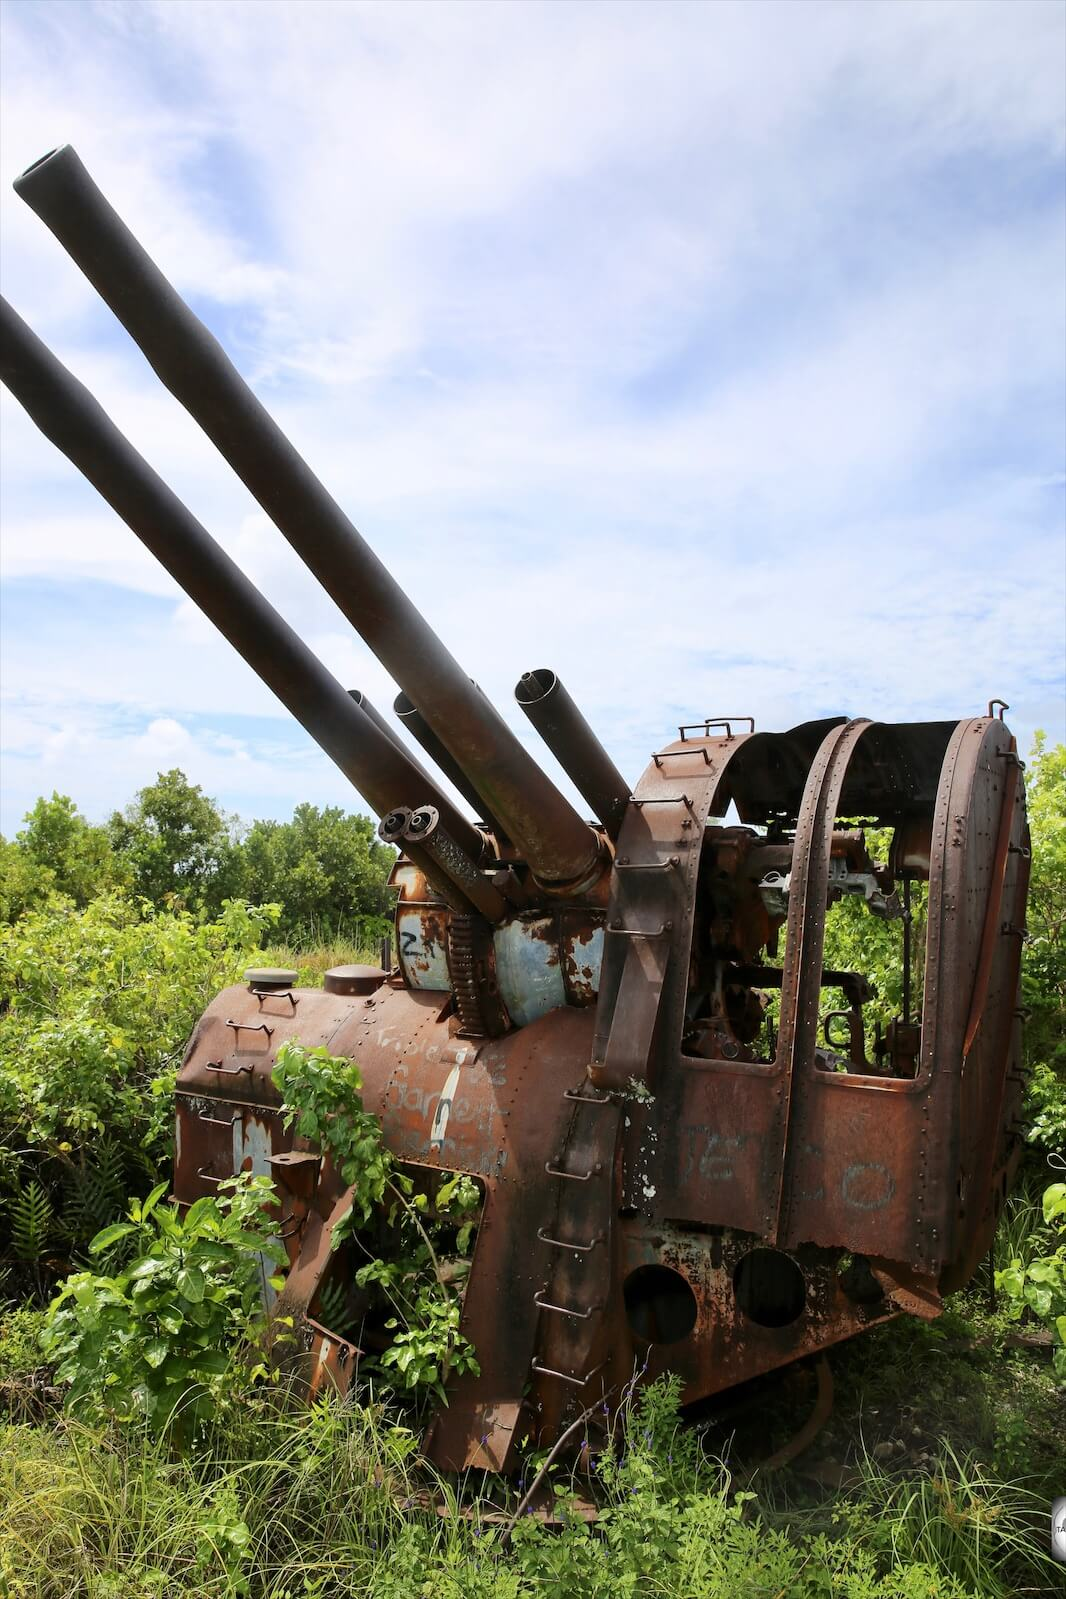 Japanese WWII-era, double-barrelled anti-aircraft gun on Command Ridge.